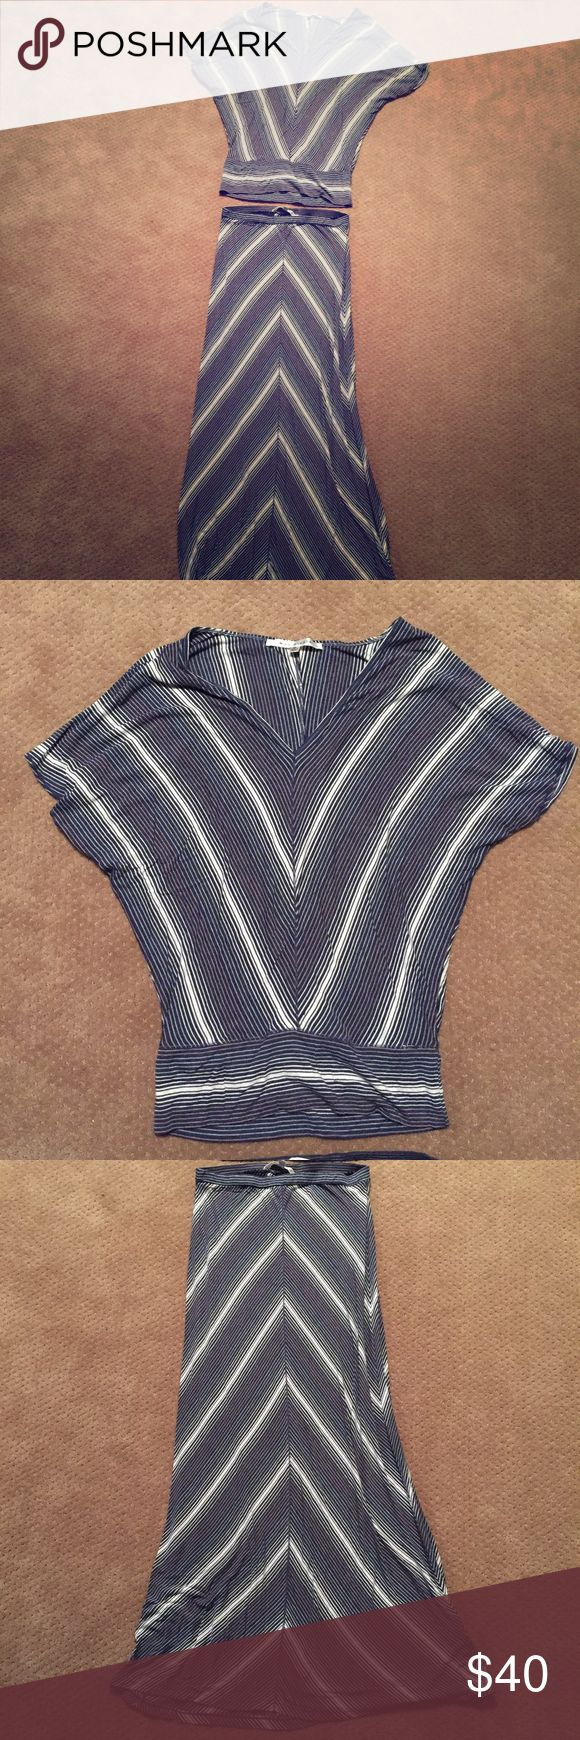 Max Studio Two-Piece Dress Blue and white two-piece dress. Worn but in excellent condition. Top is M, maxi skirt is S. From a smoke-free home. Max Studio Dresses Maxi